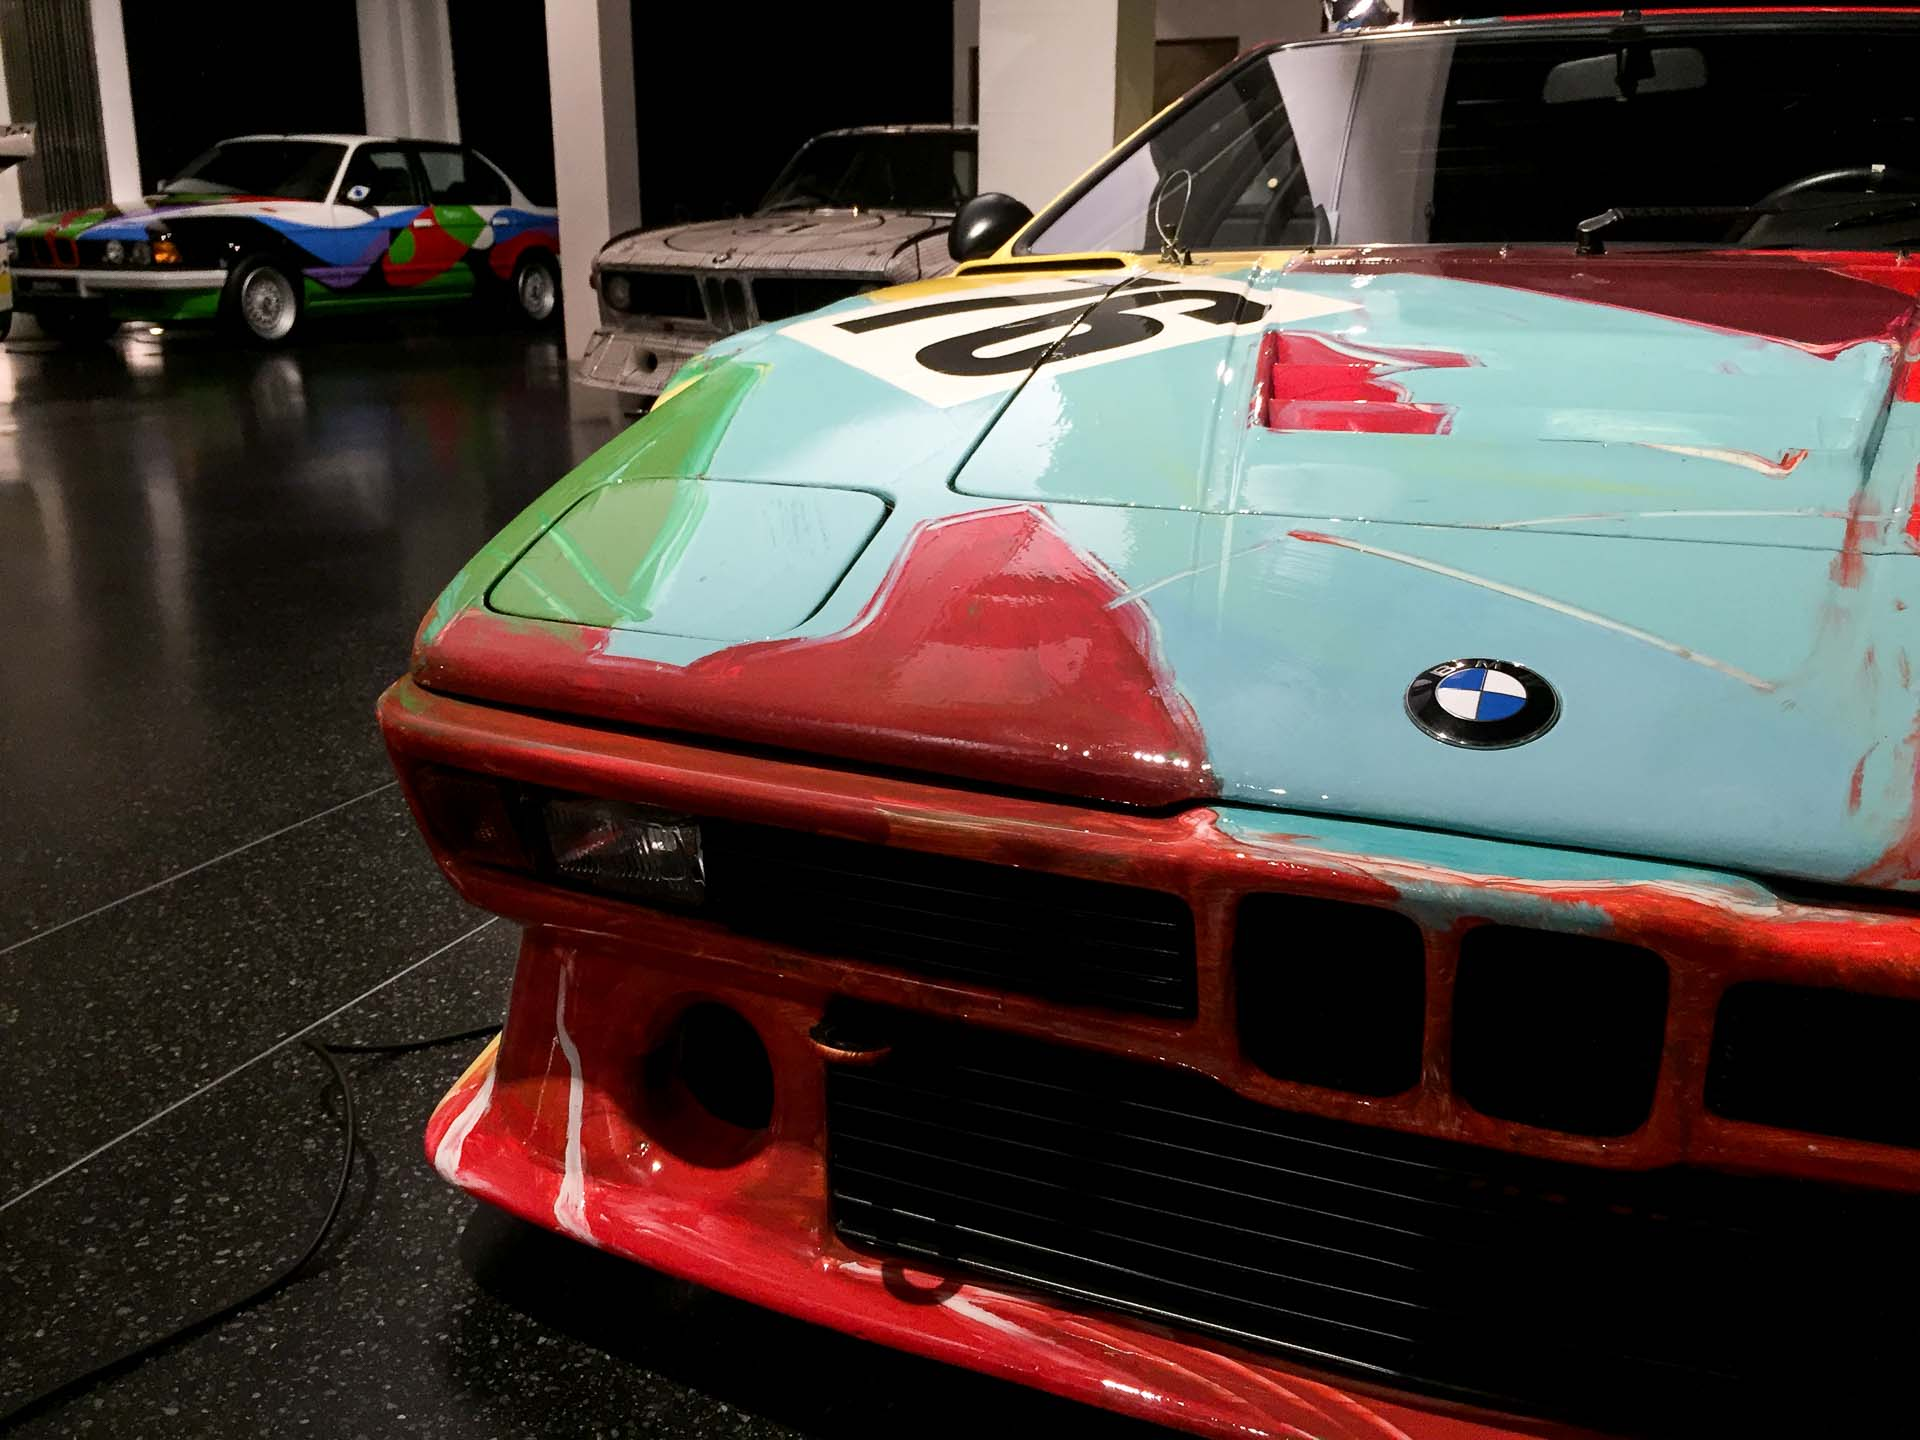 1979 BMW M1 Group 4, Andy Warhol